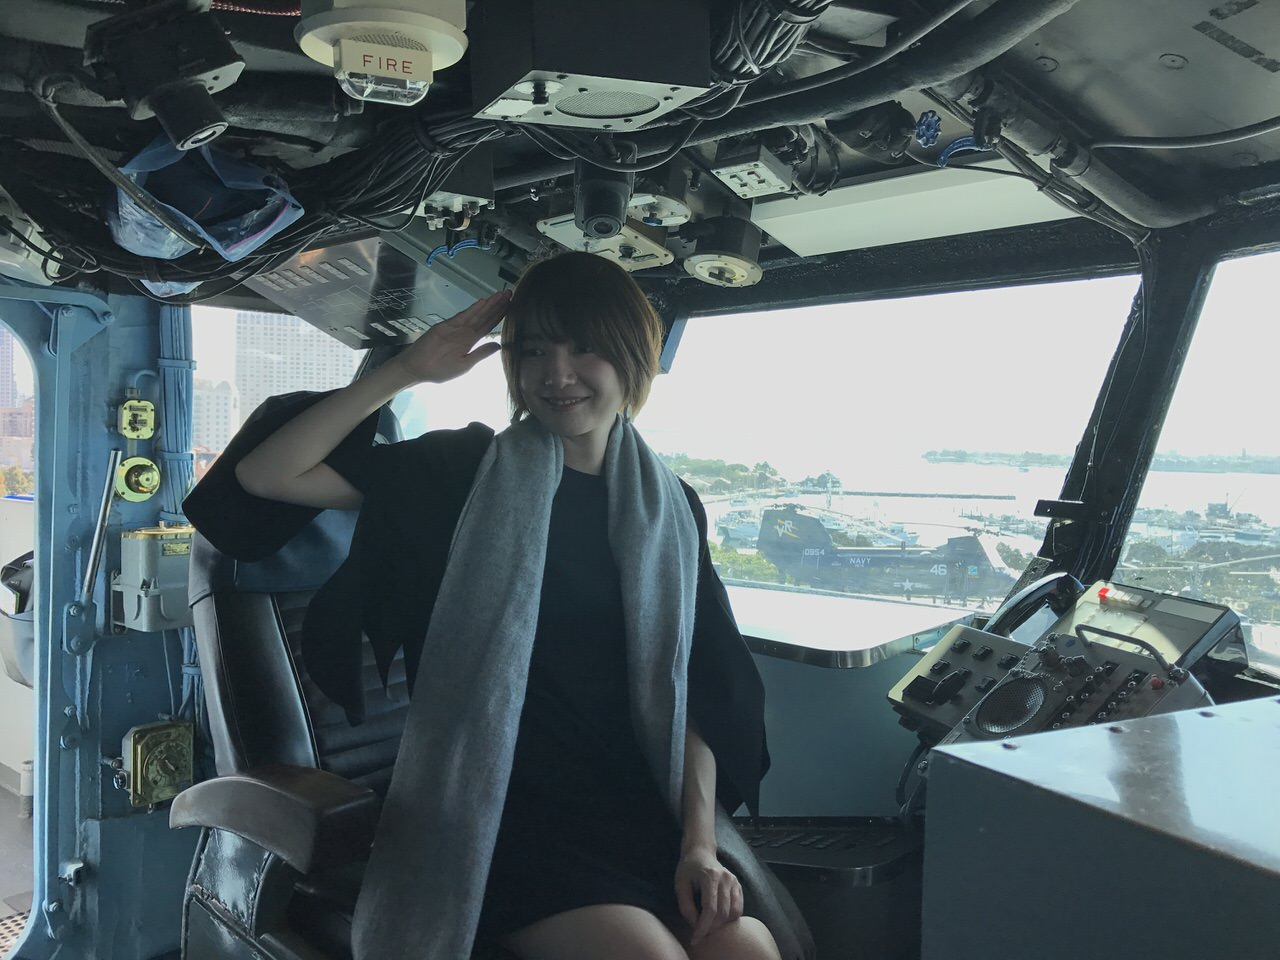 Uss midway museum 0581